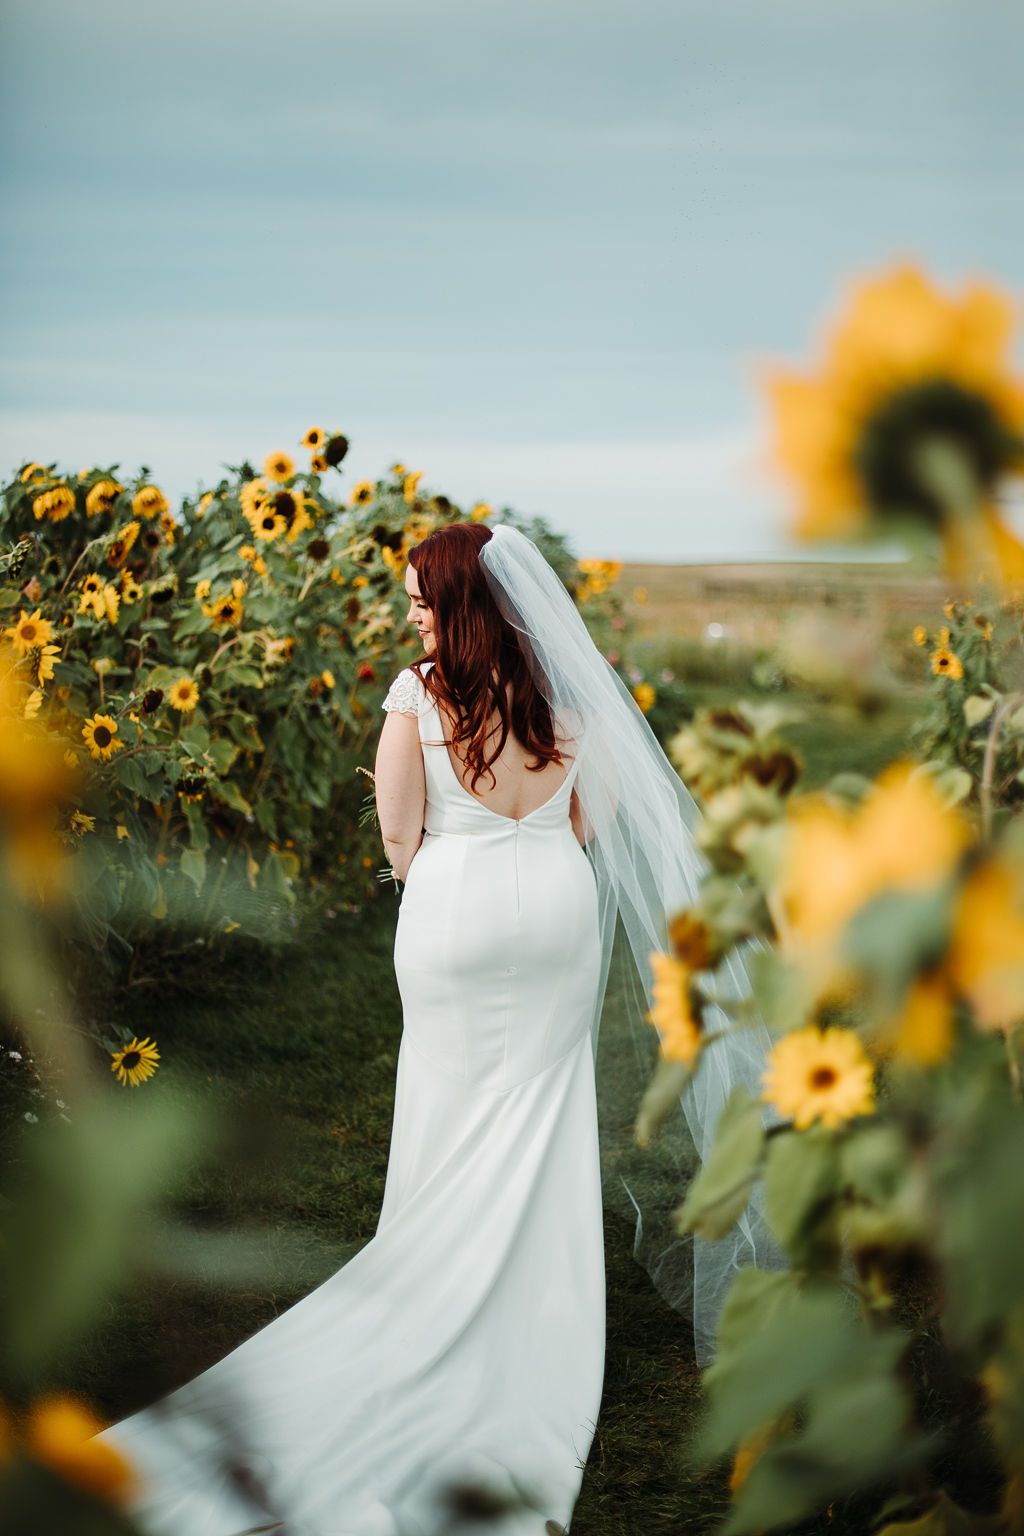 the back of a bride in a classic wedding dress and veil while she stands on a grassy path surrounded by yellow sunflowers. www.thegathered.ca